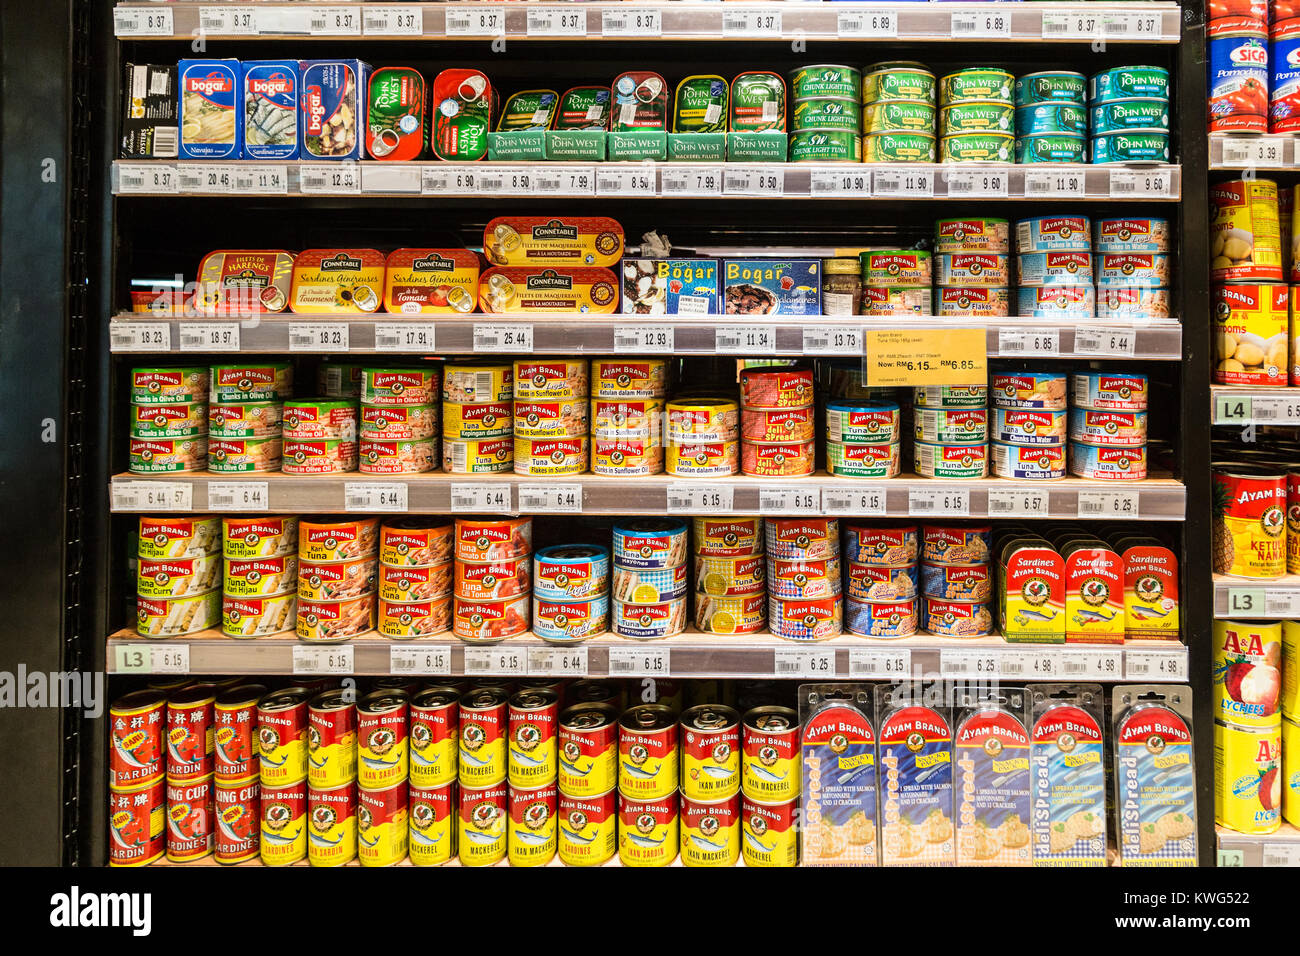 KUALA LUMPUR, MALAYSIA - DECEMBER 22, 2017: Canned tuna and other fish are displayed in a supermarket shelf in Malaysia Stock Photo